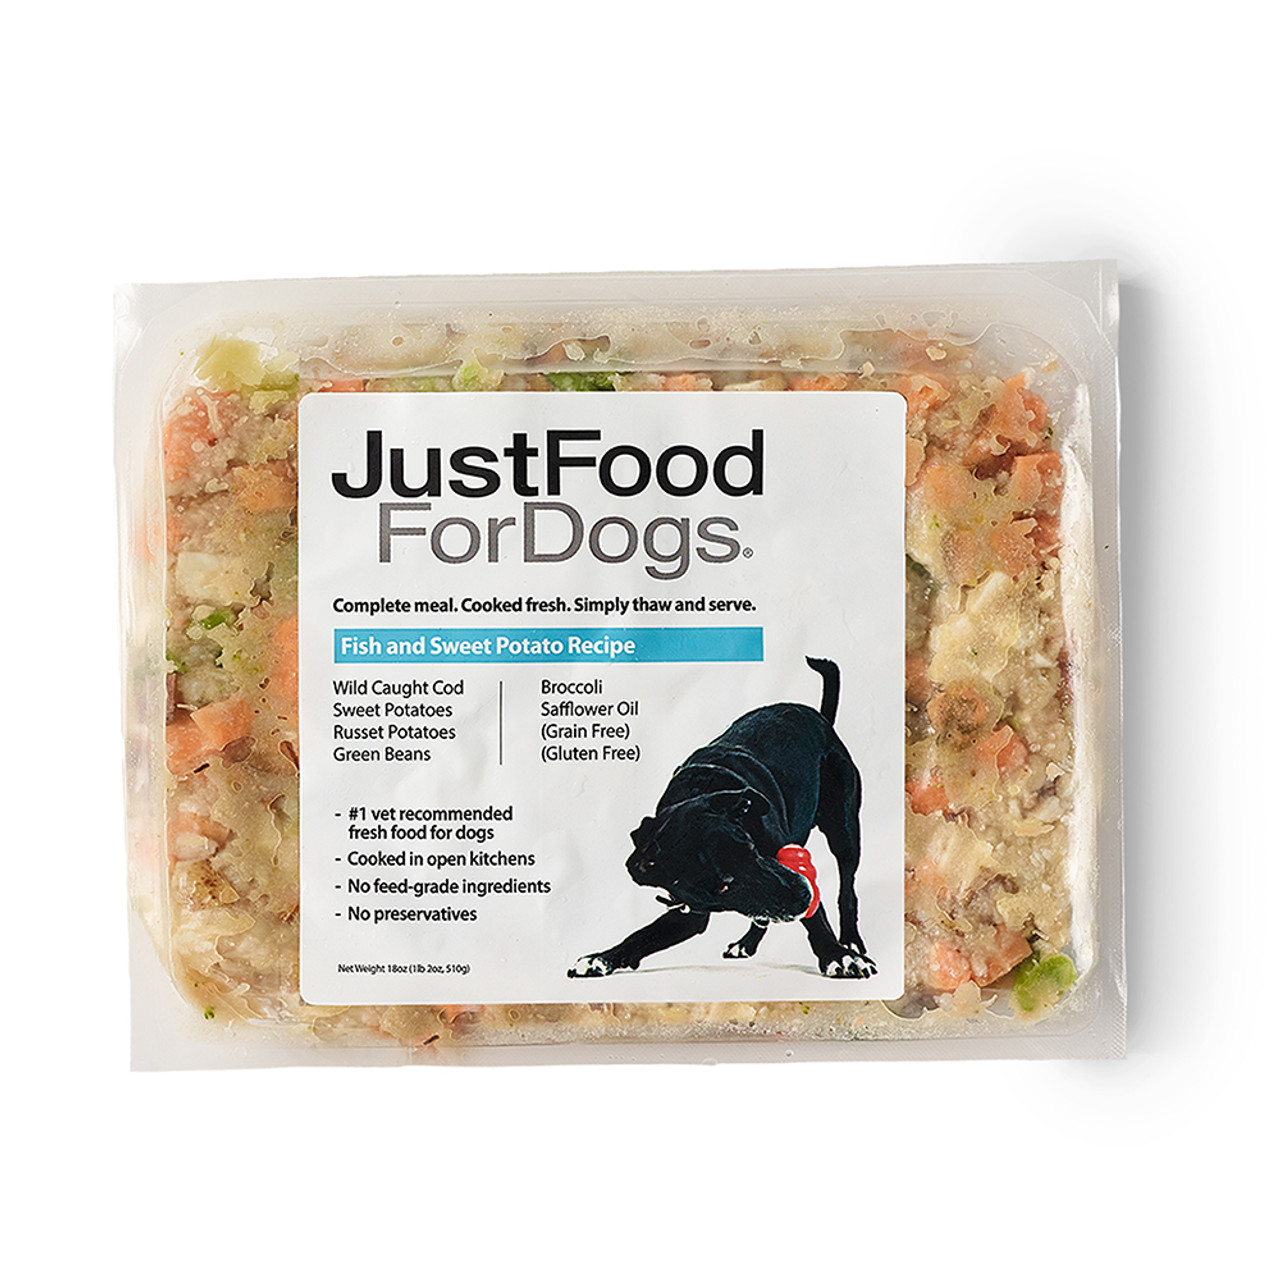 JustFoodForDogs Fish & Sweet Potato Frozen Cooked Dog Food